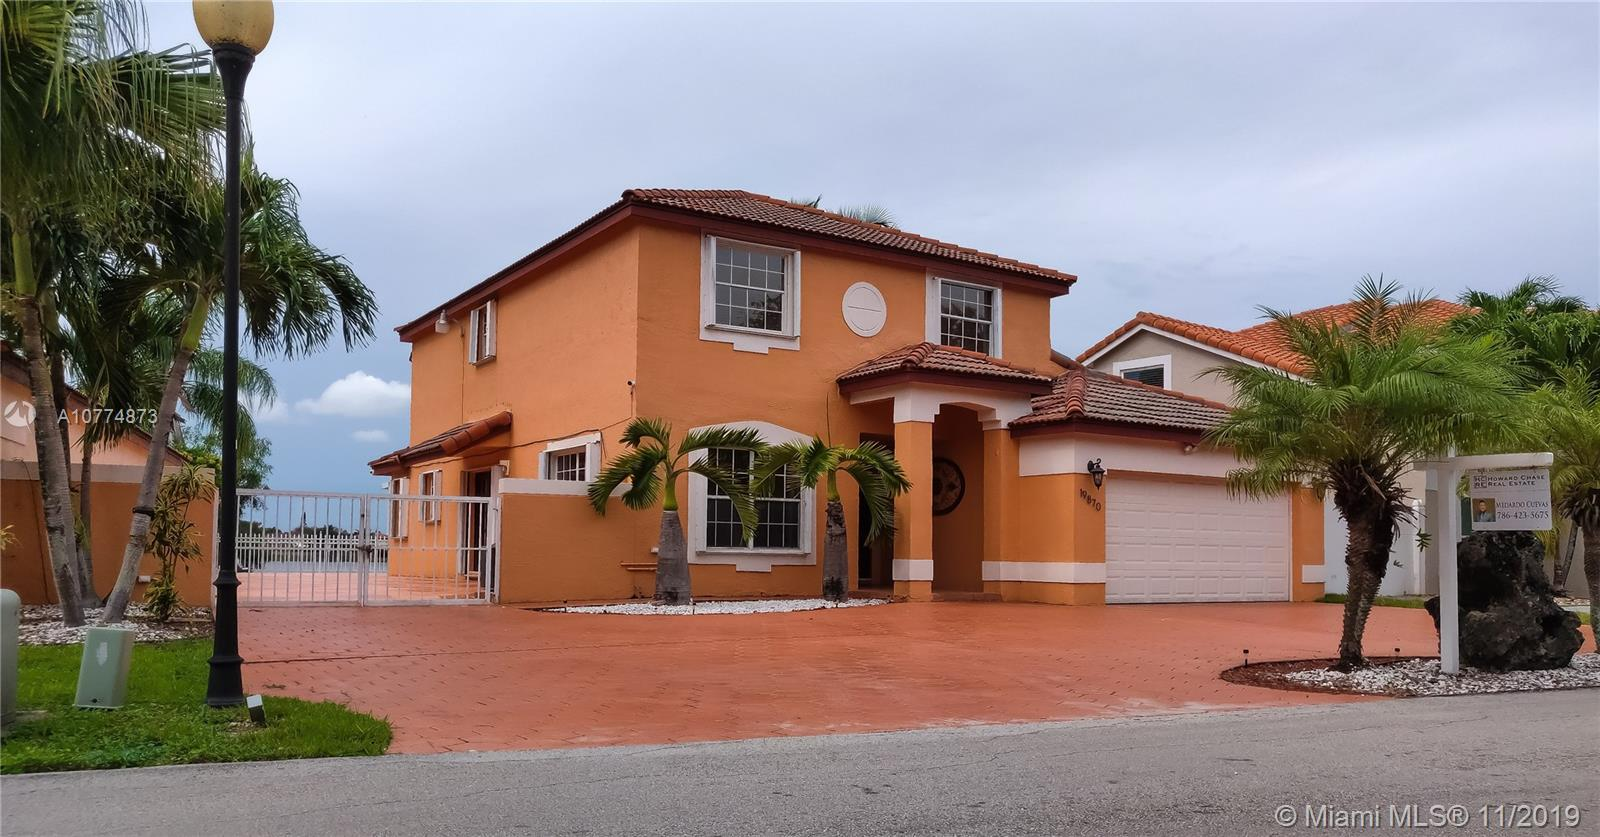 19870 NW 83rd Ave  For Sale A10774873, FL